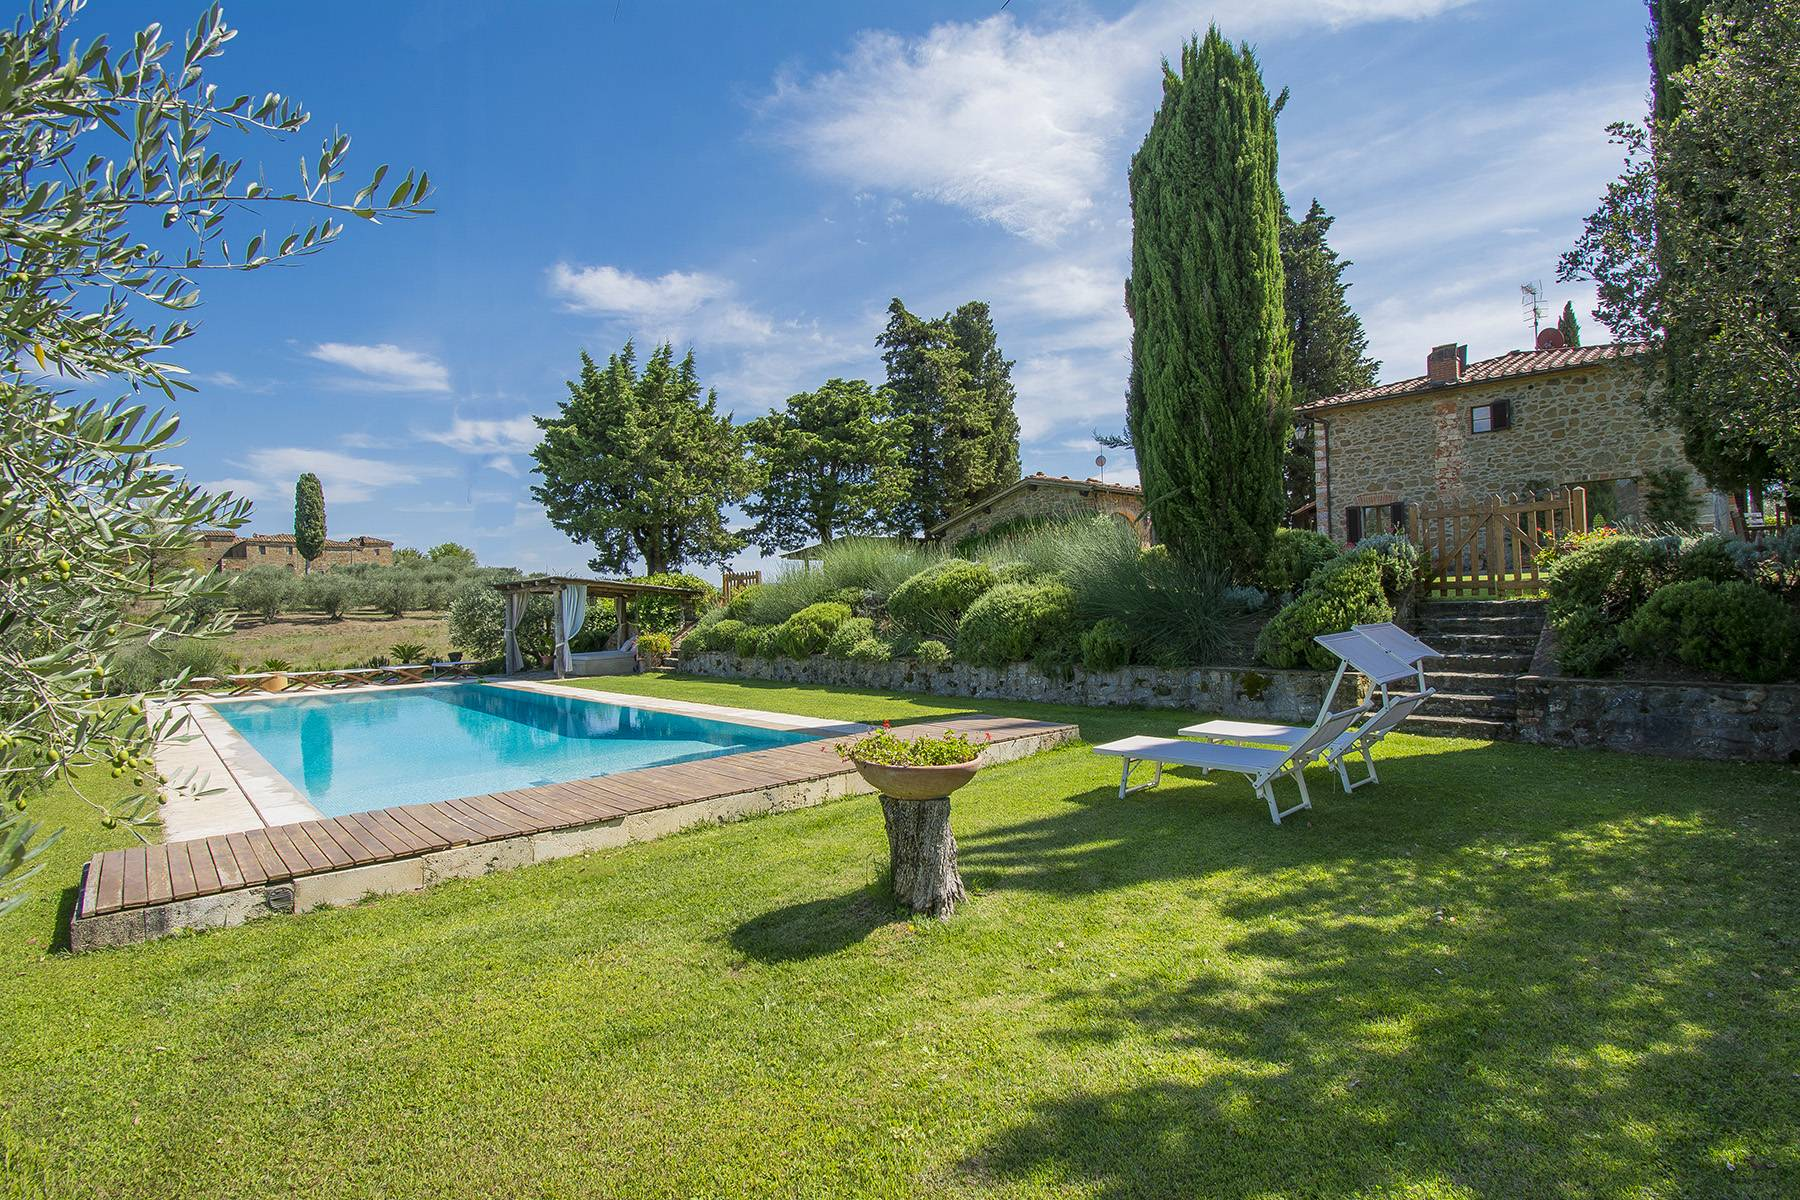 House in the Tuscan Hills for Sale - 1